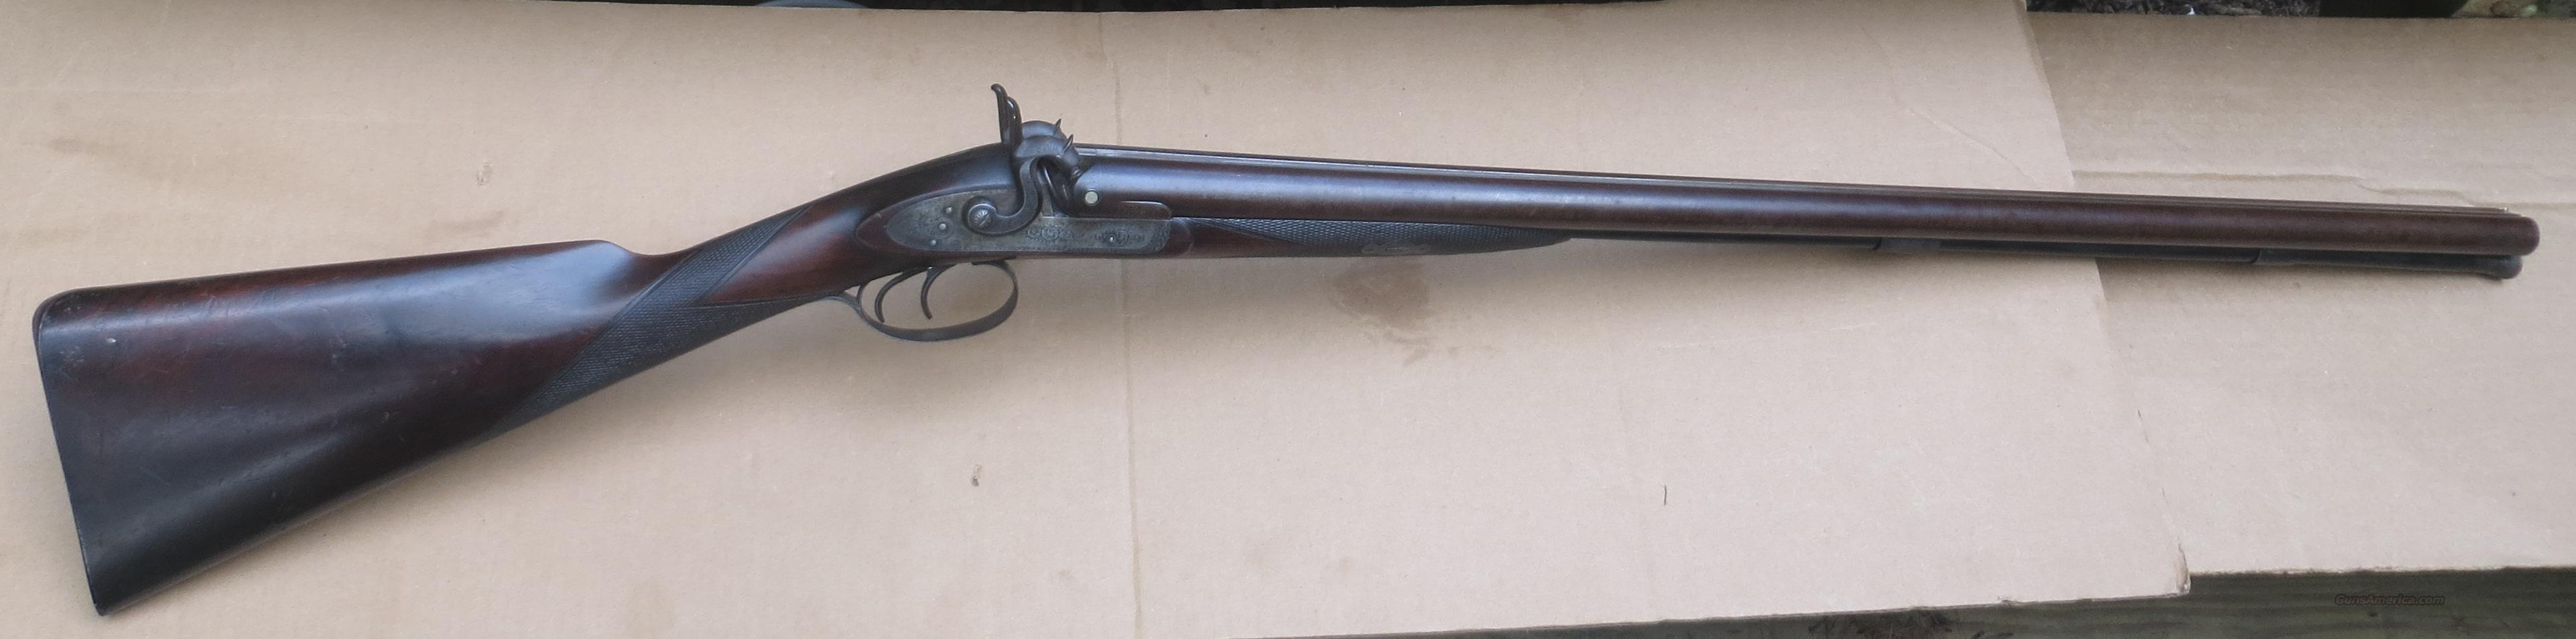 Moore & Harris 1864 Percussion 12 Ga Shotgun  Guns > Shotguns > Antique (Pre-1899) Shotguns - Misc.